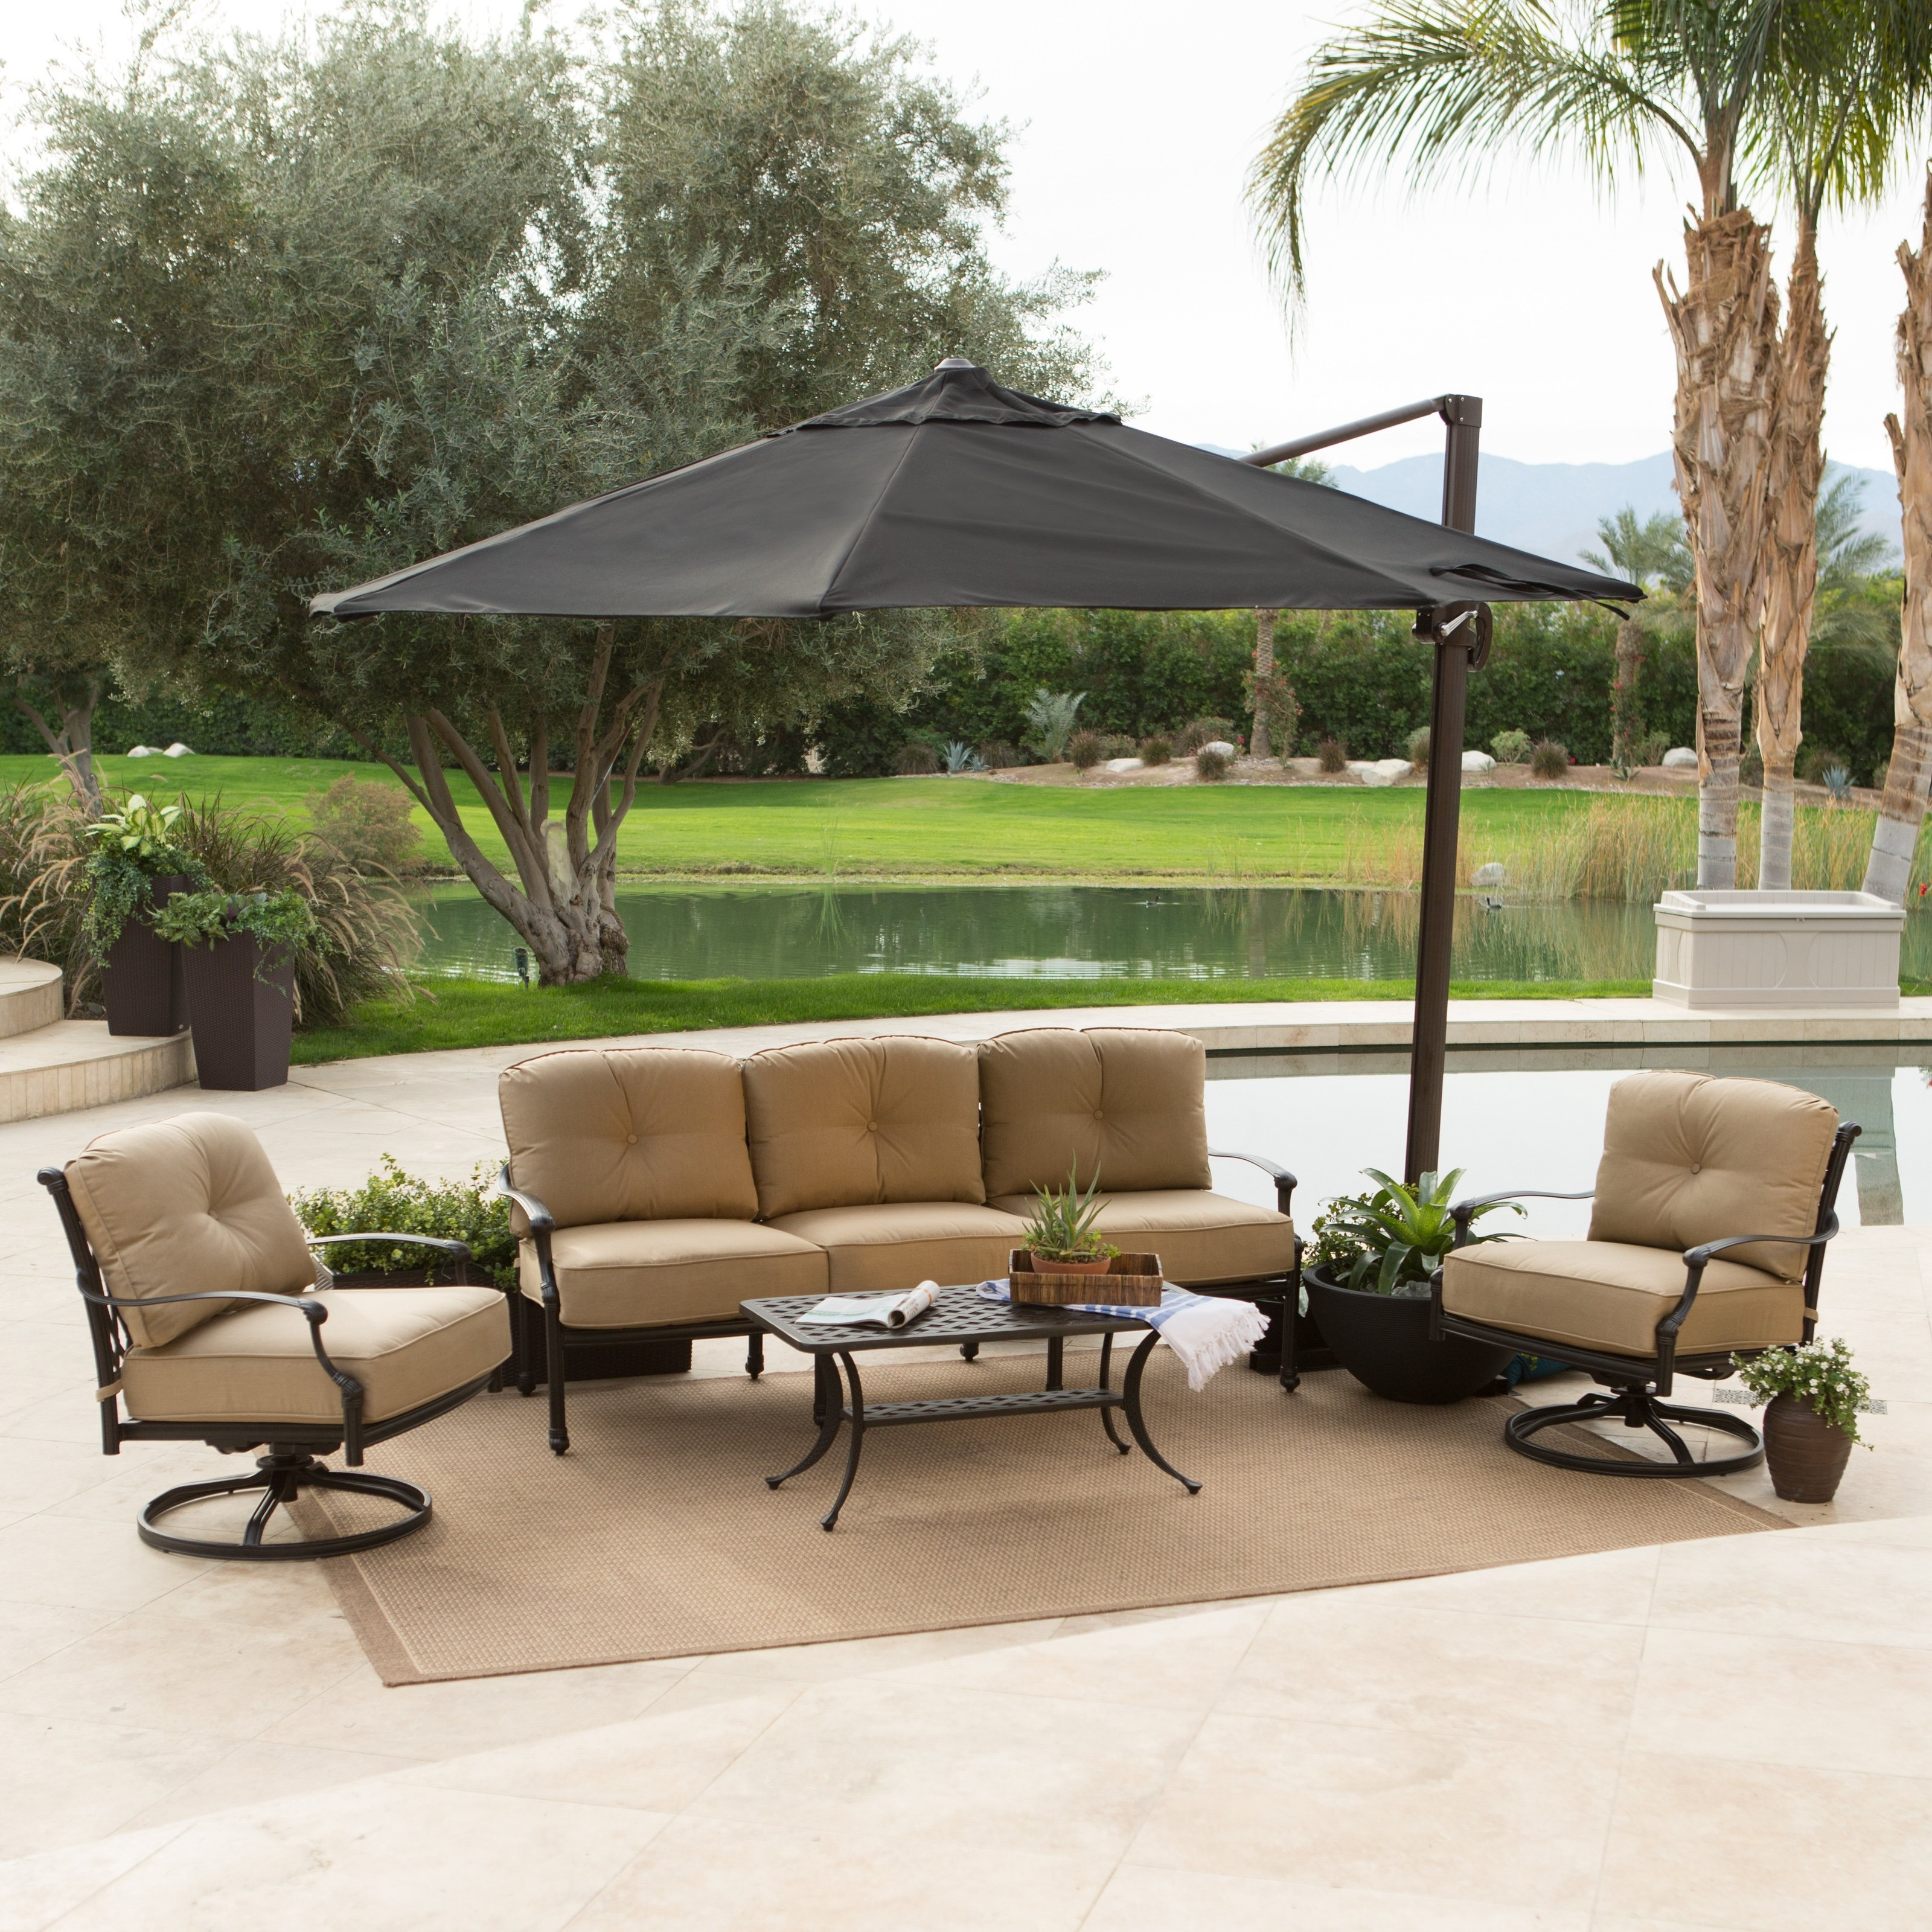 Most Recent Rectangular Offset Patio Umbrellas Within Cheerful Outdoor Patio Design With Chairs And Table Sets Protected (View 19 of 20)